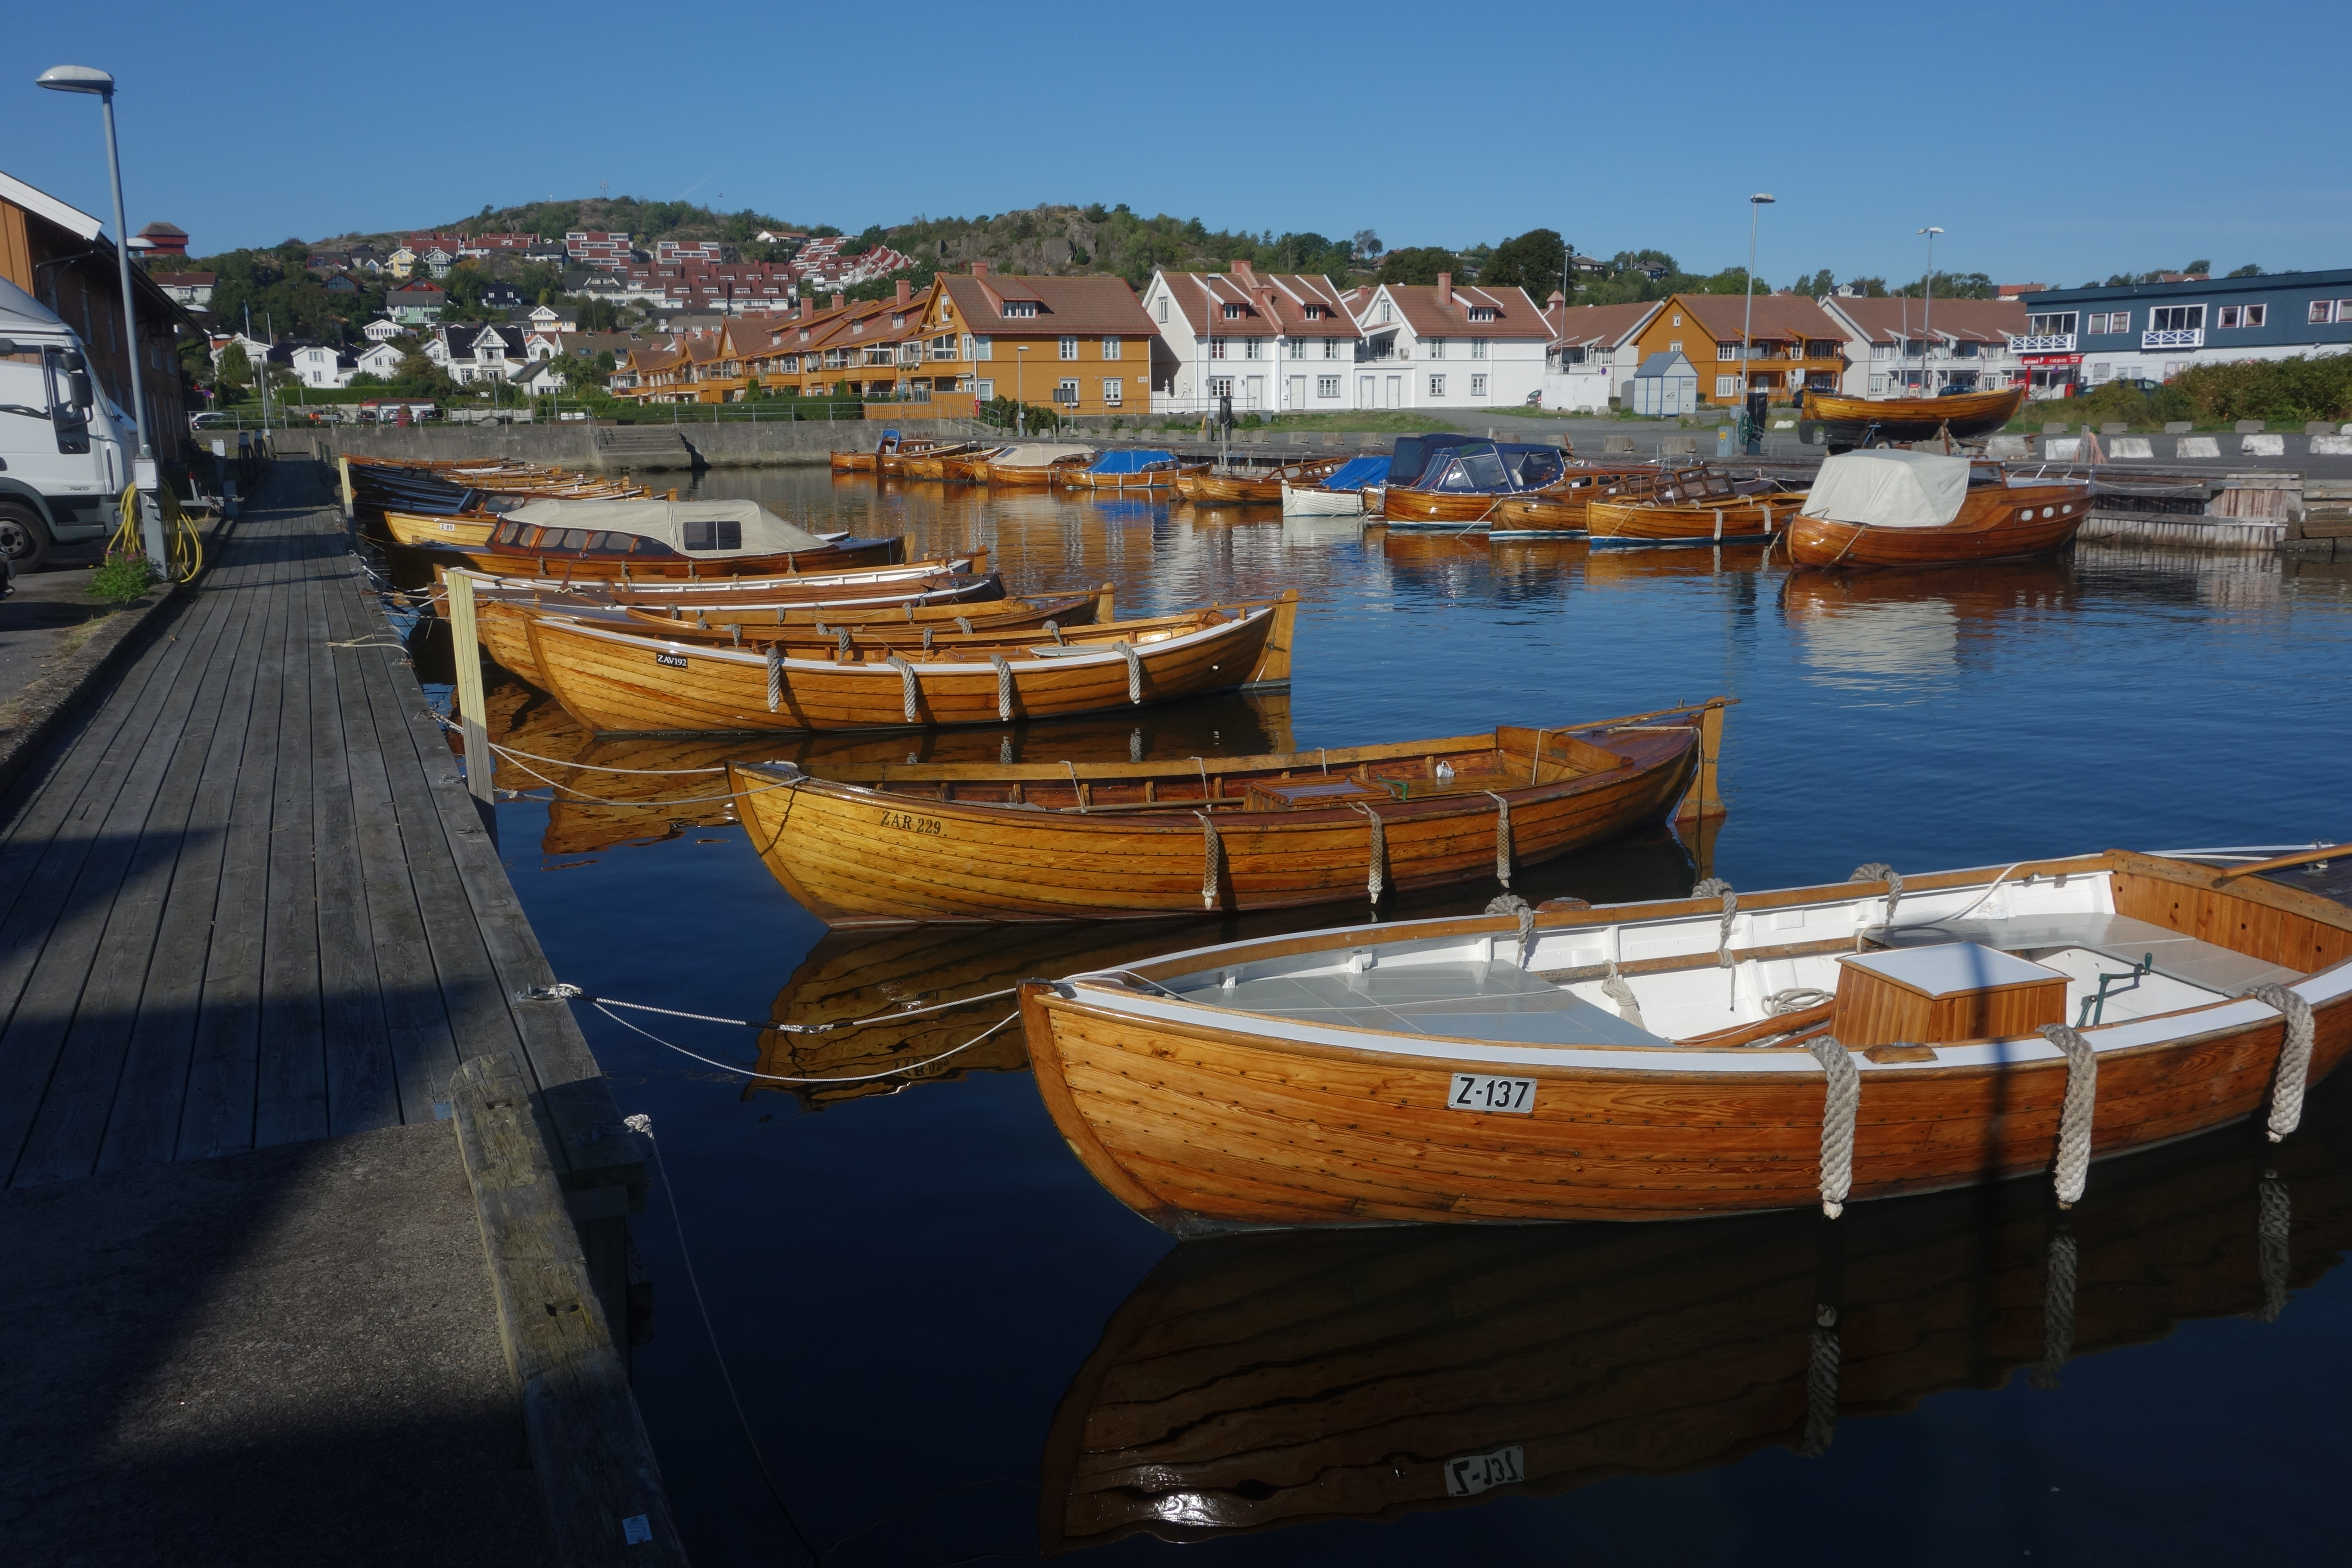 Stavern was pretty without the fog, too.  Here, wooden boats in the marina.